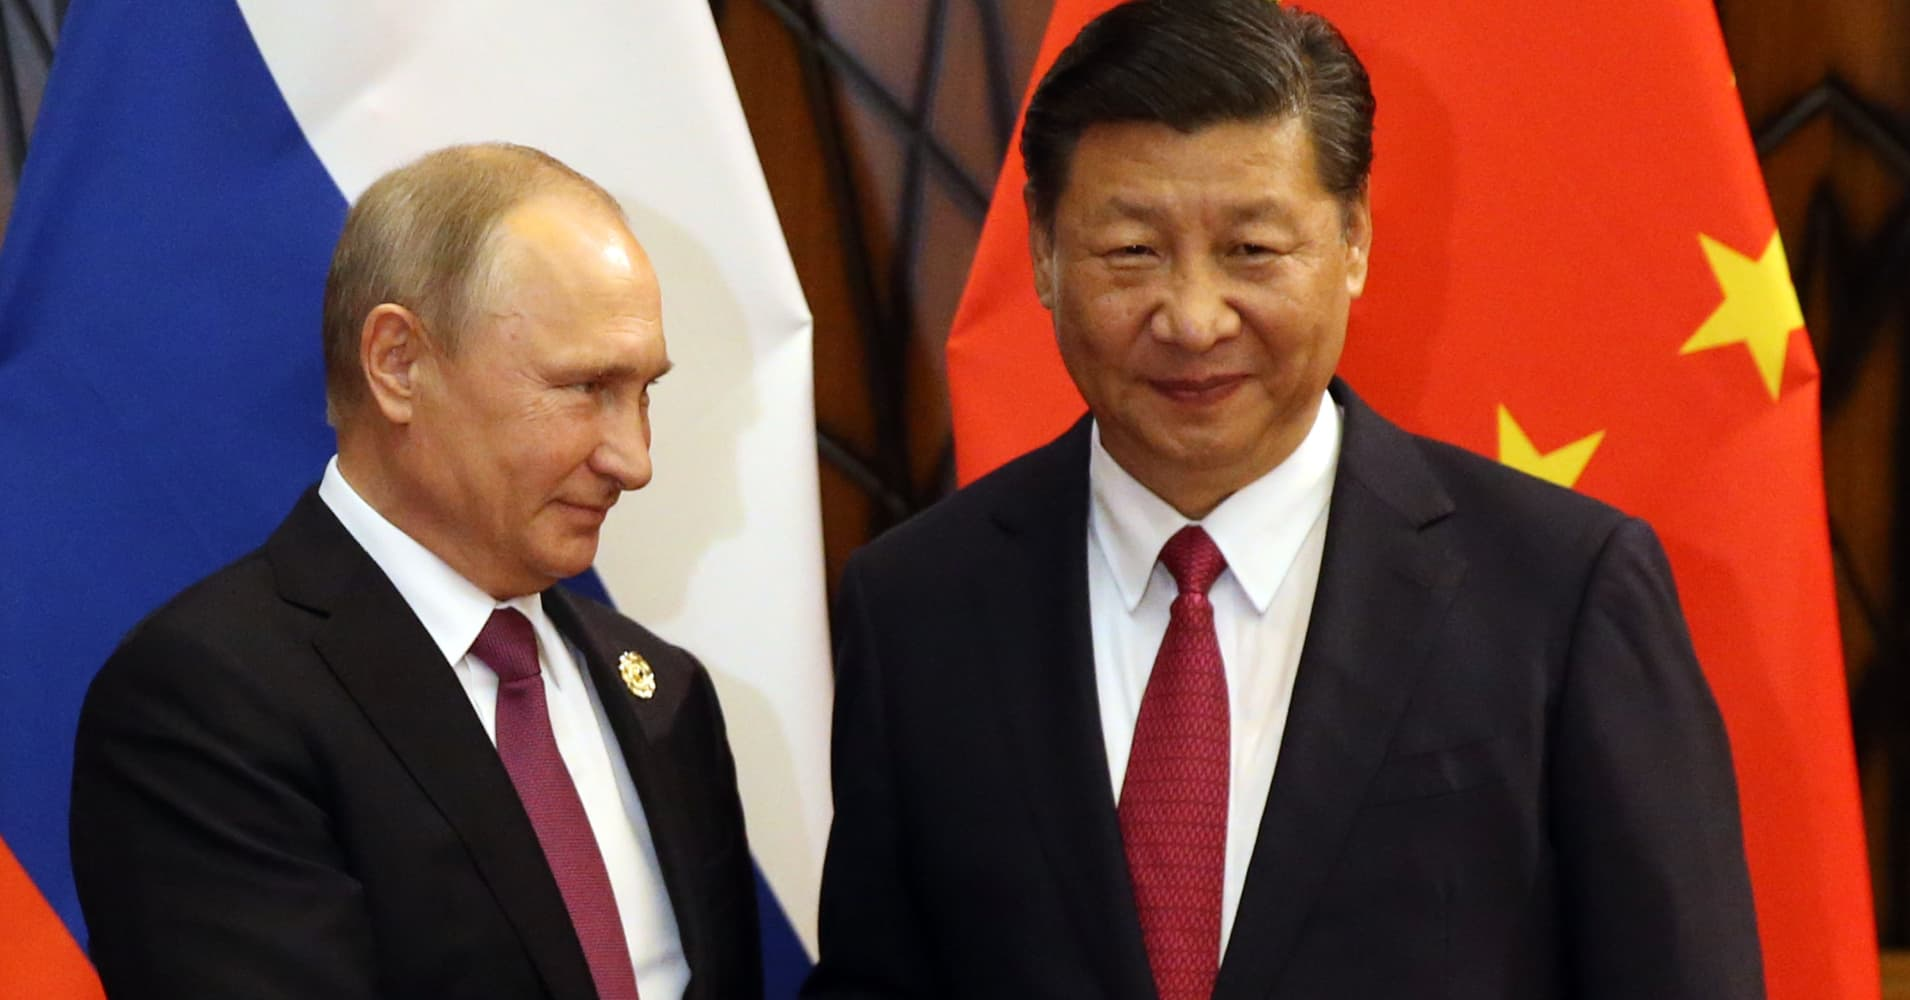 Russia and China are looking at launching joint projects worth more than $100 billion